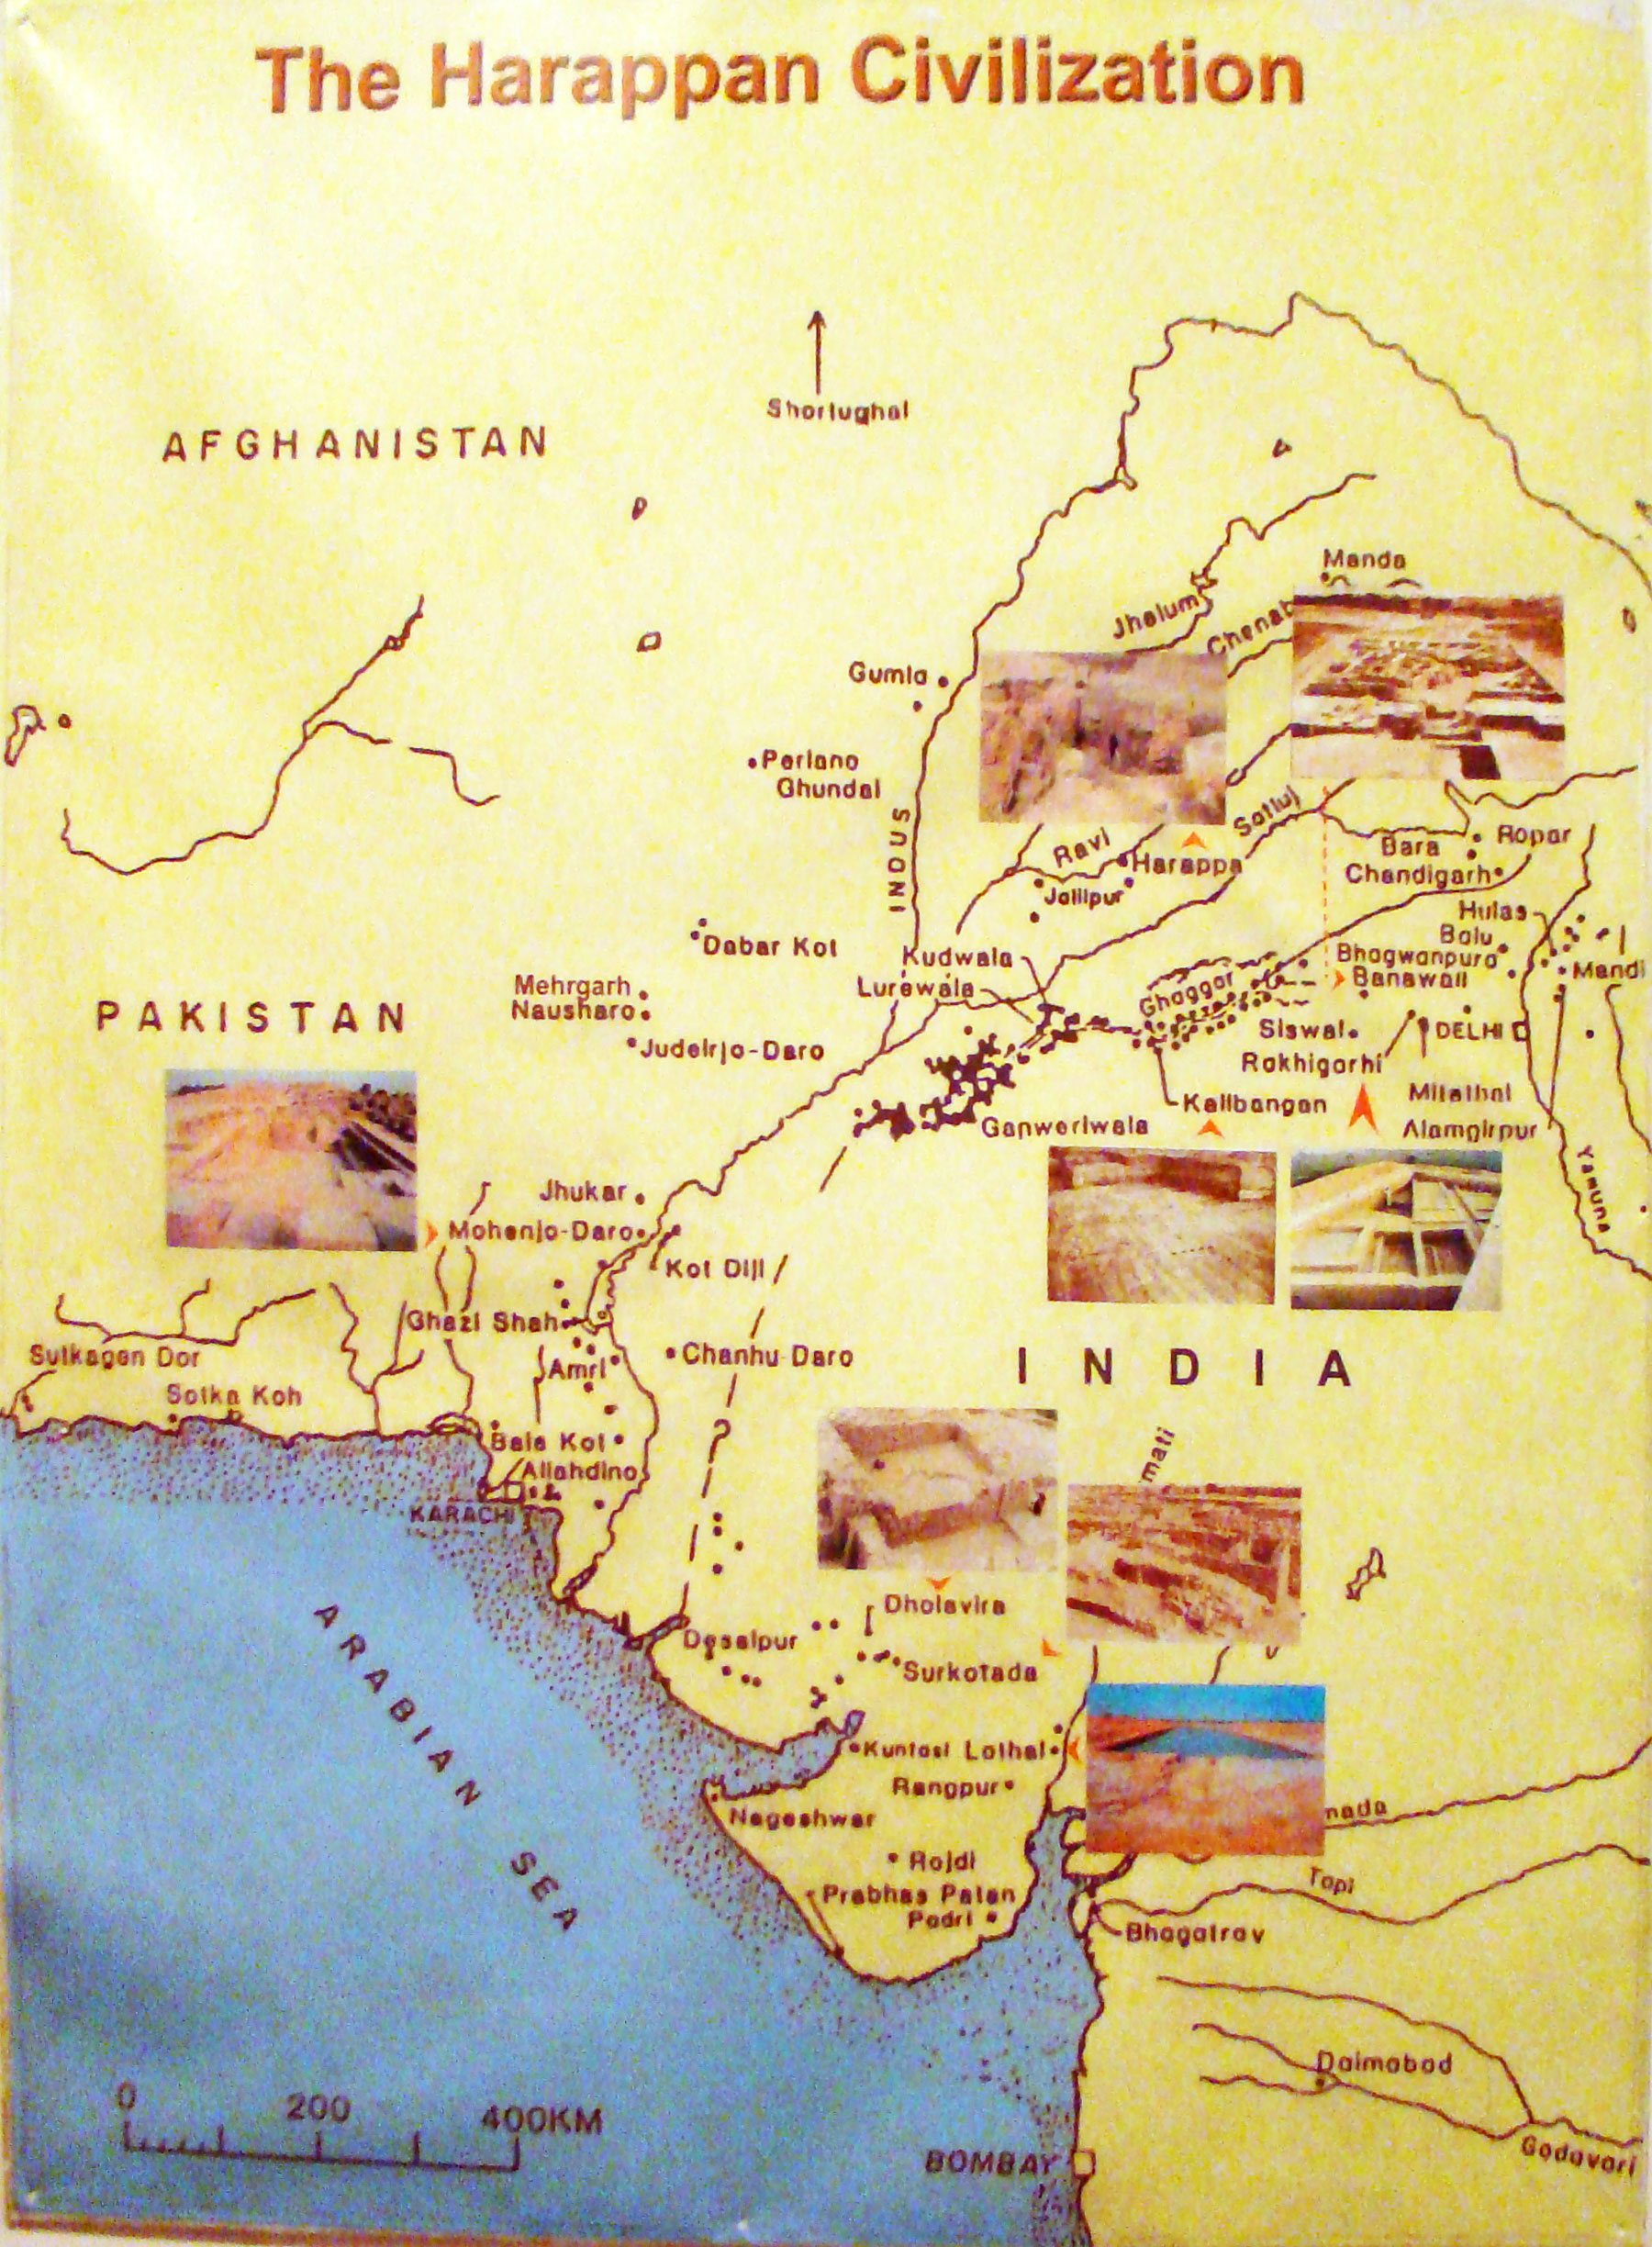 Harappan Civilisation Map